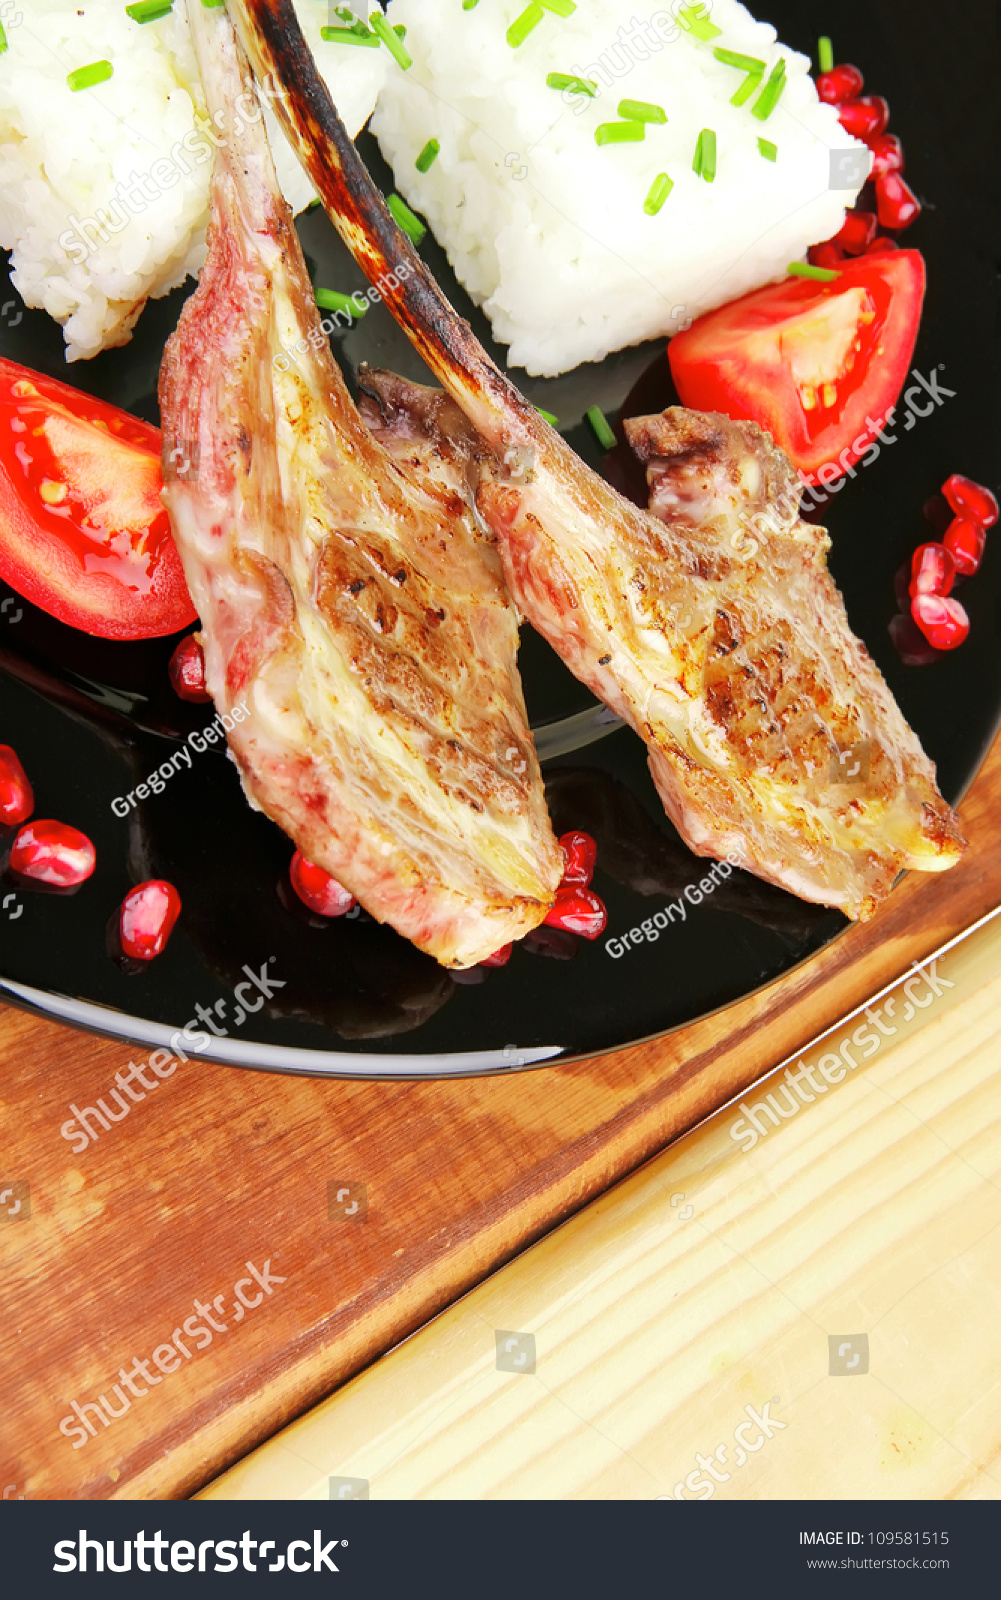 how to cook veal ribs